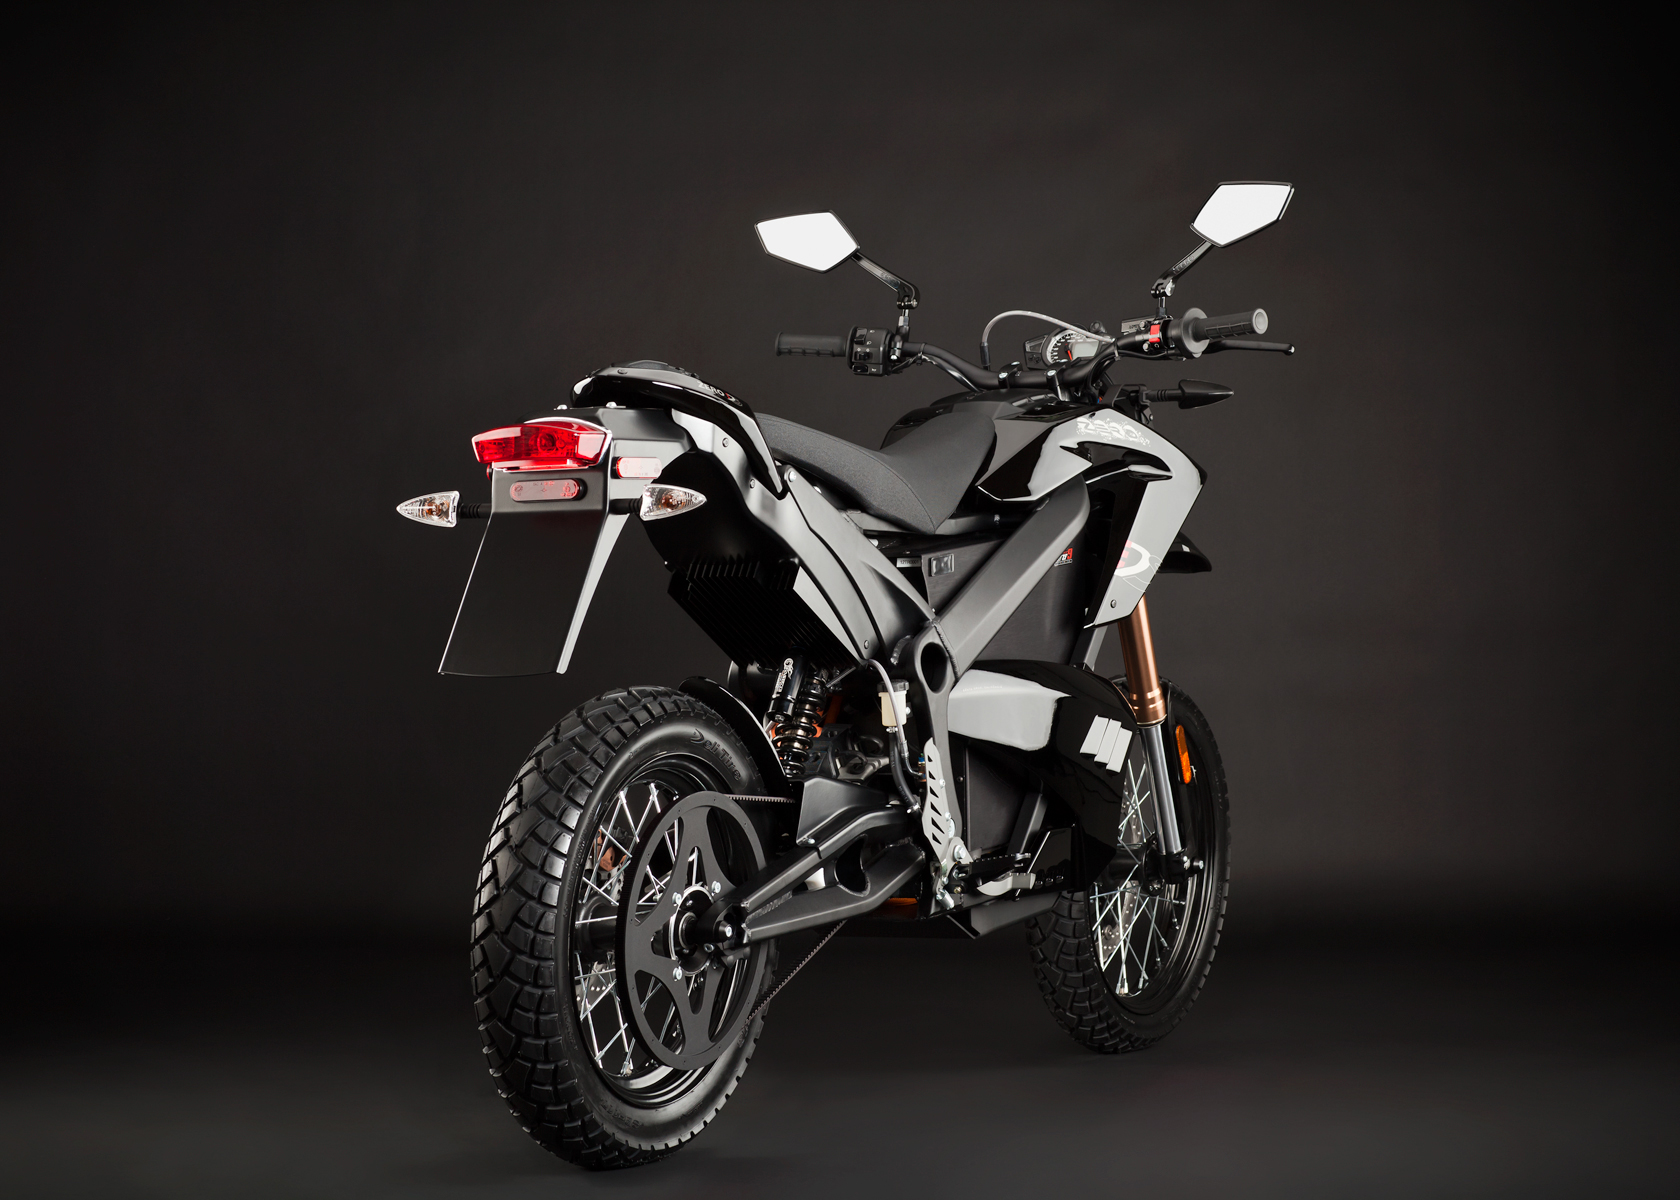 2012 Zero DS Electric Motorcycle: Black Angle Right, Rear View